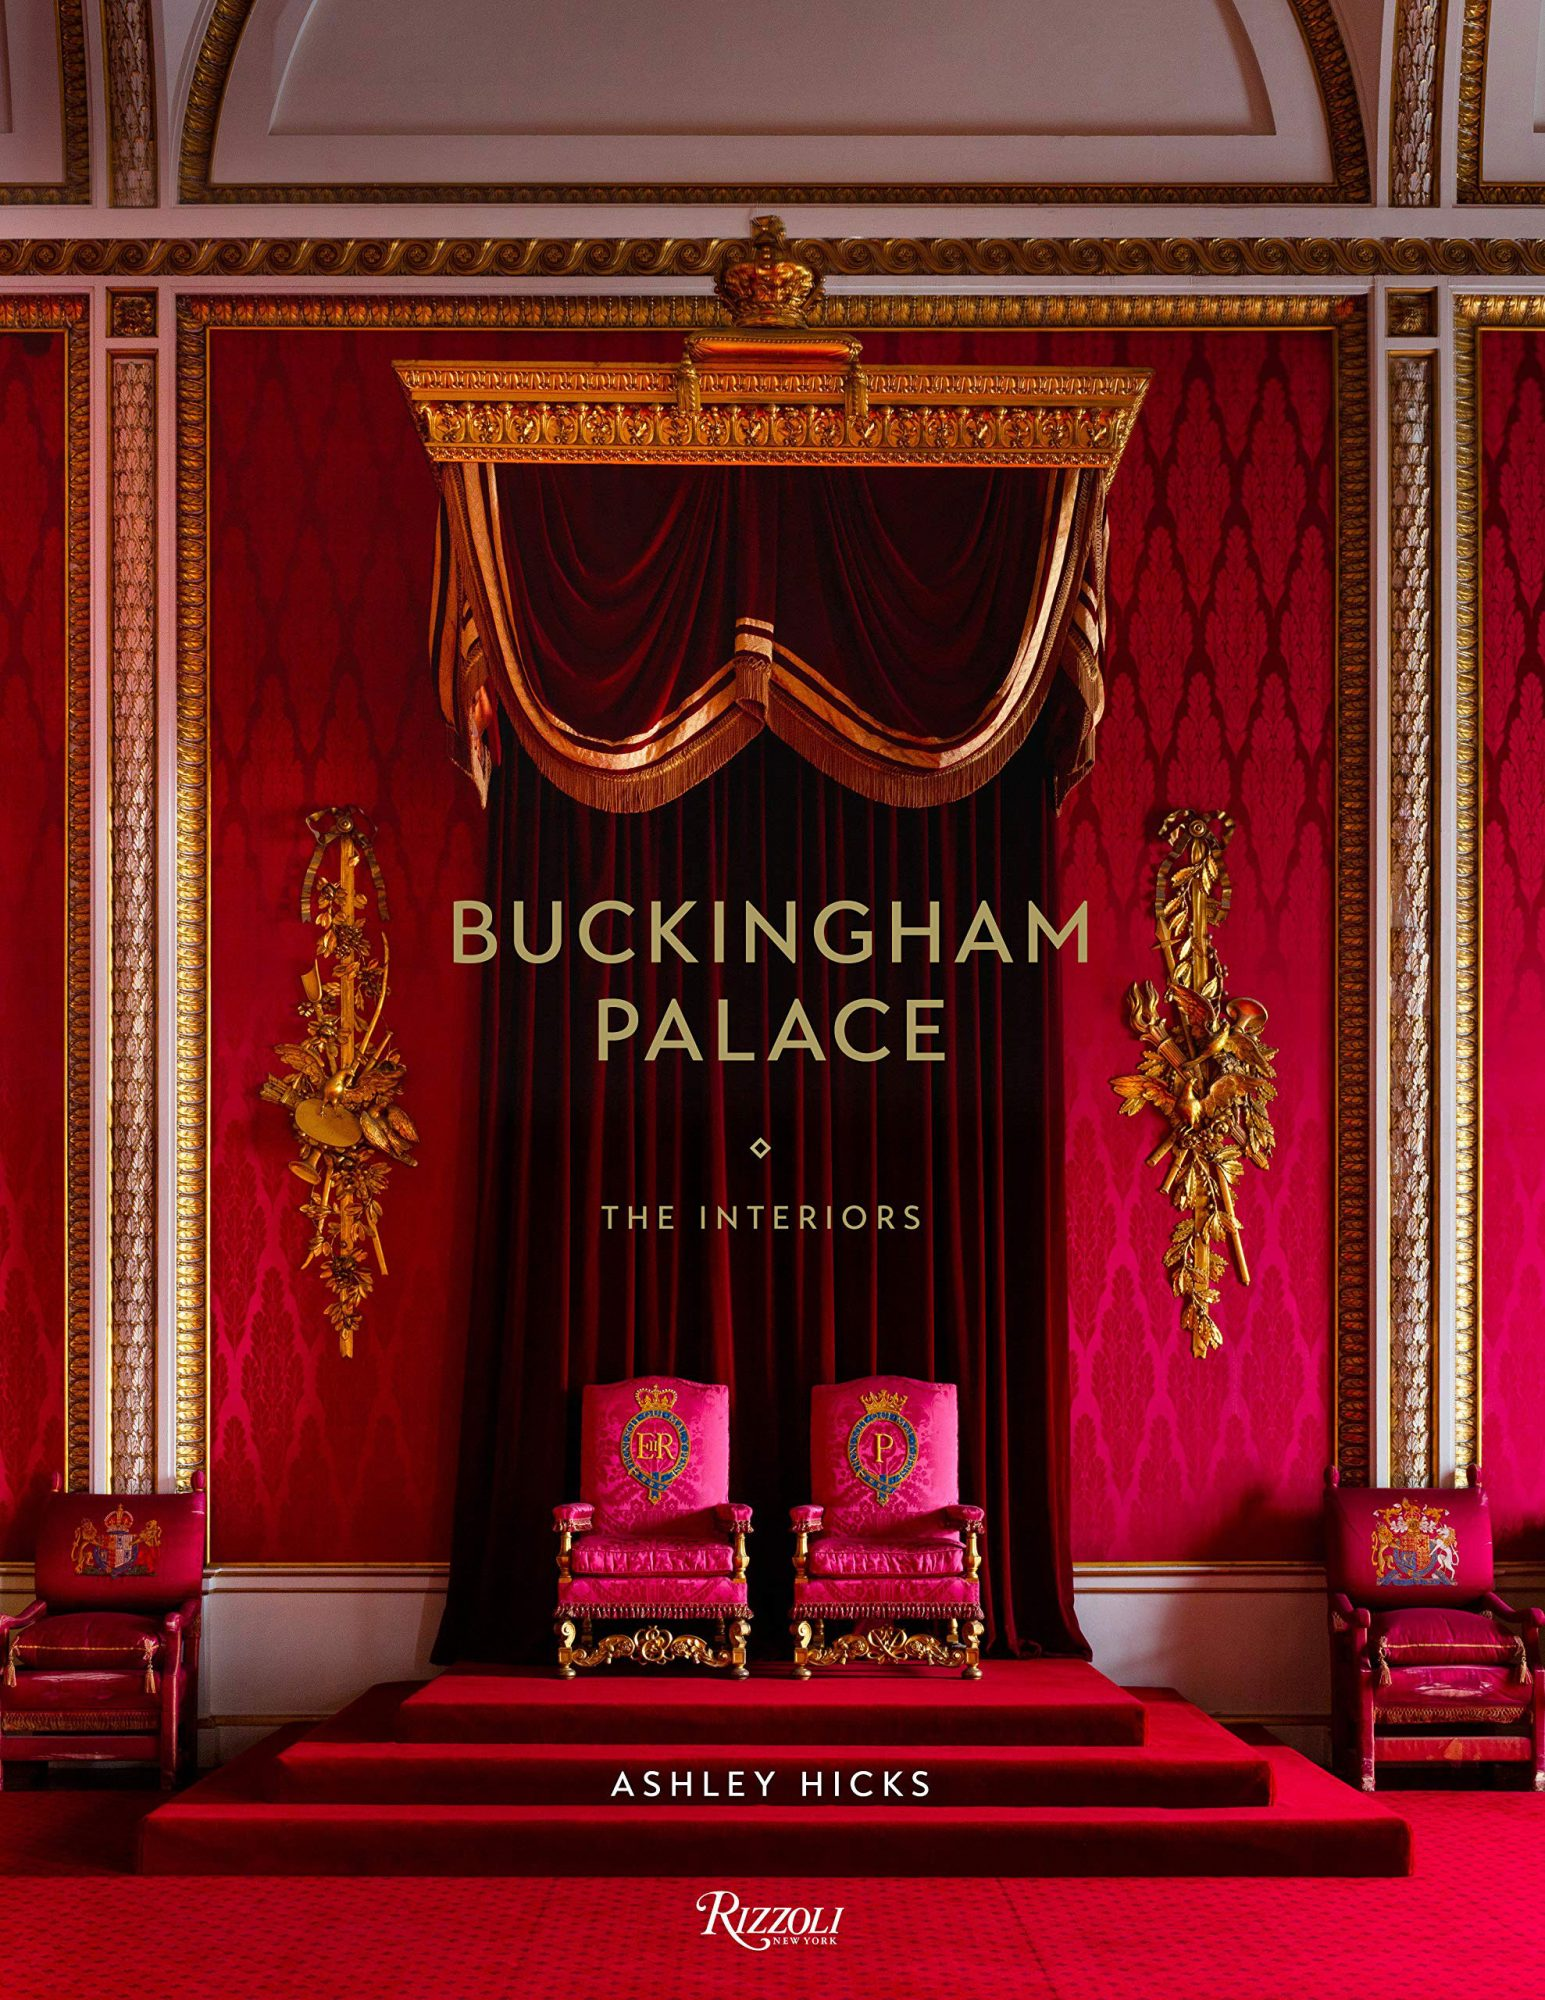 Buckingham palace book